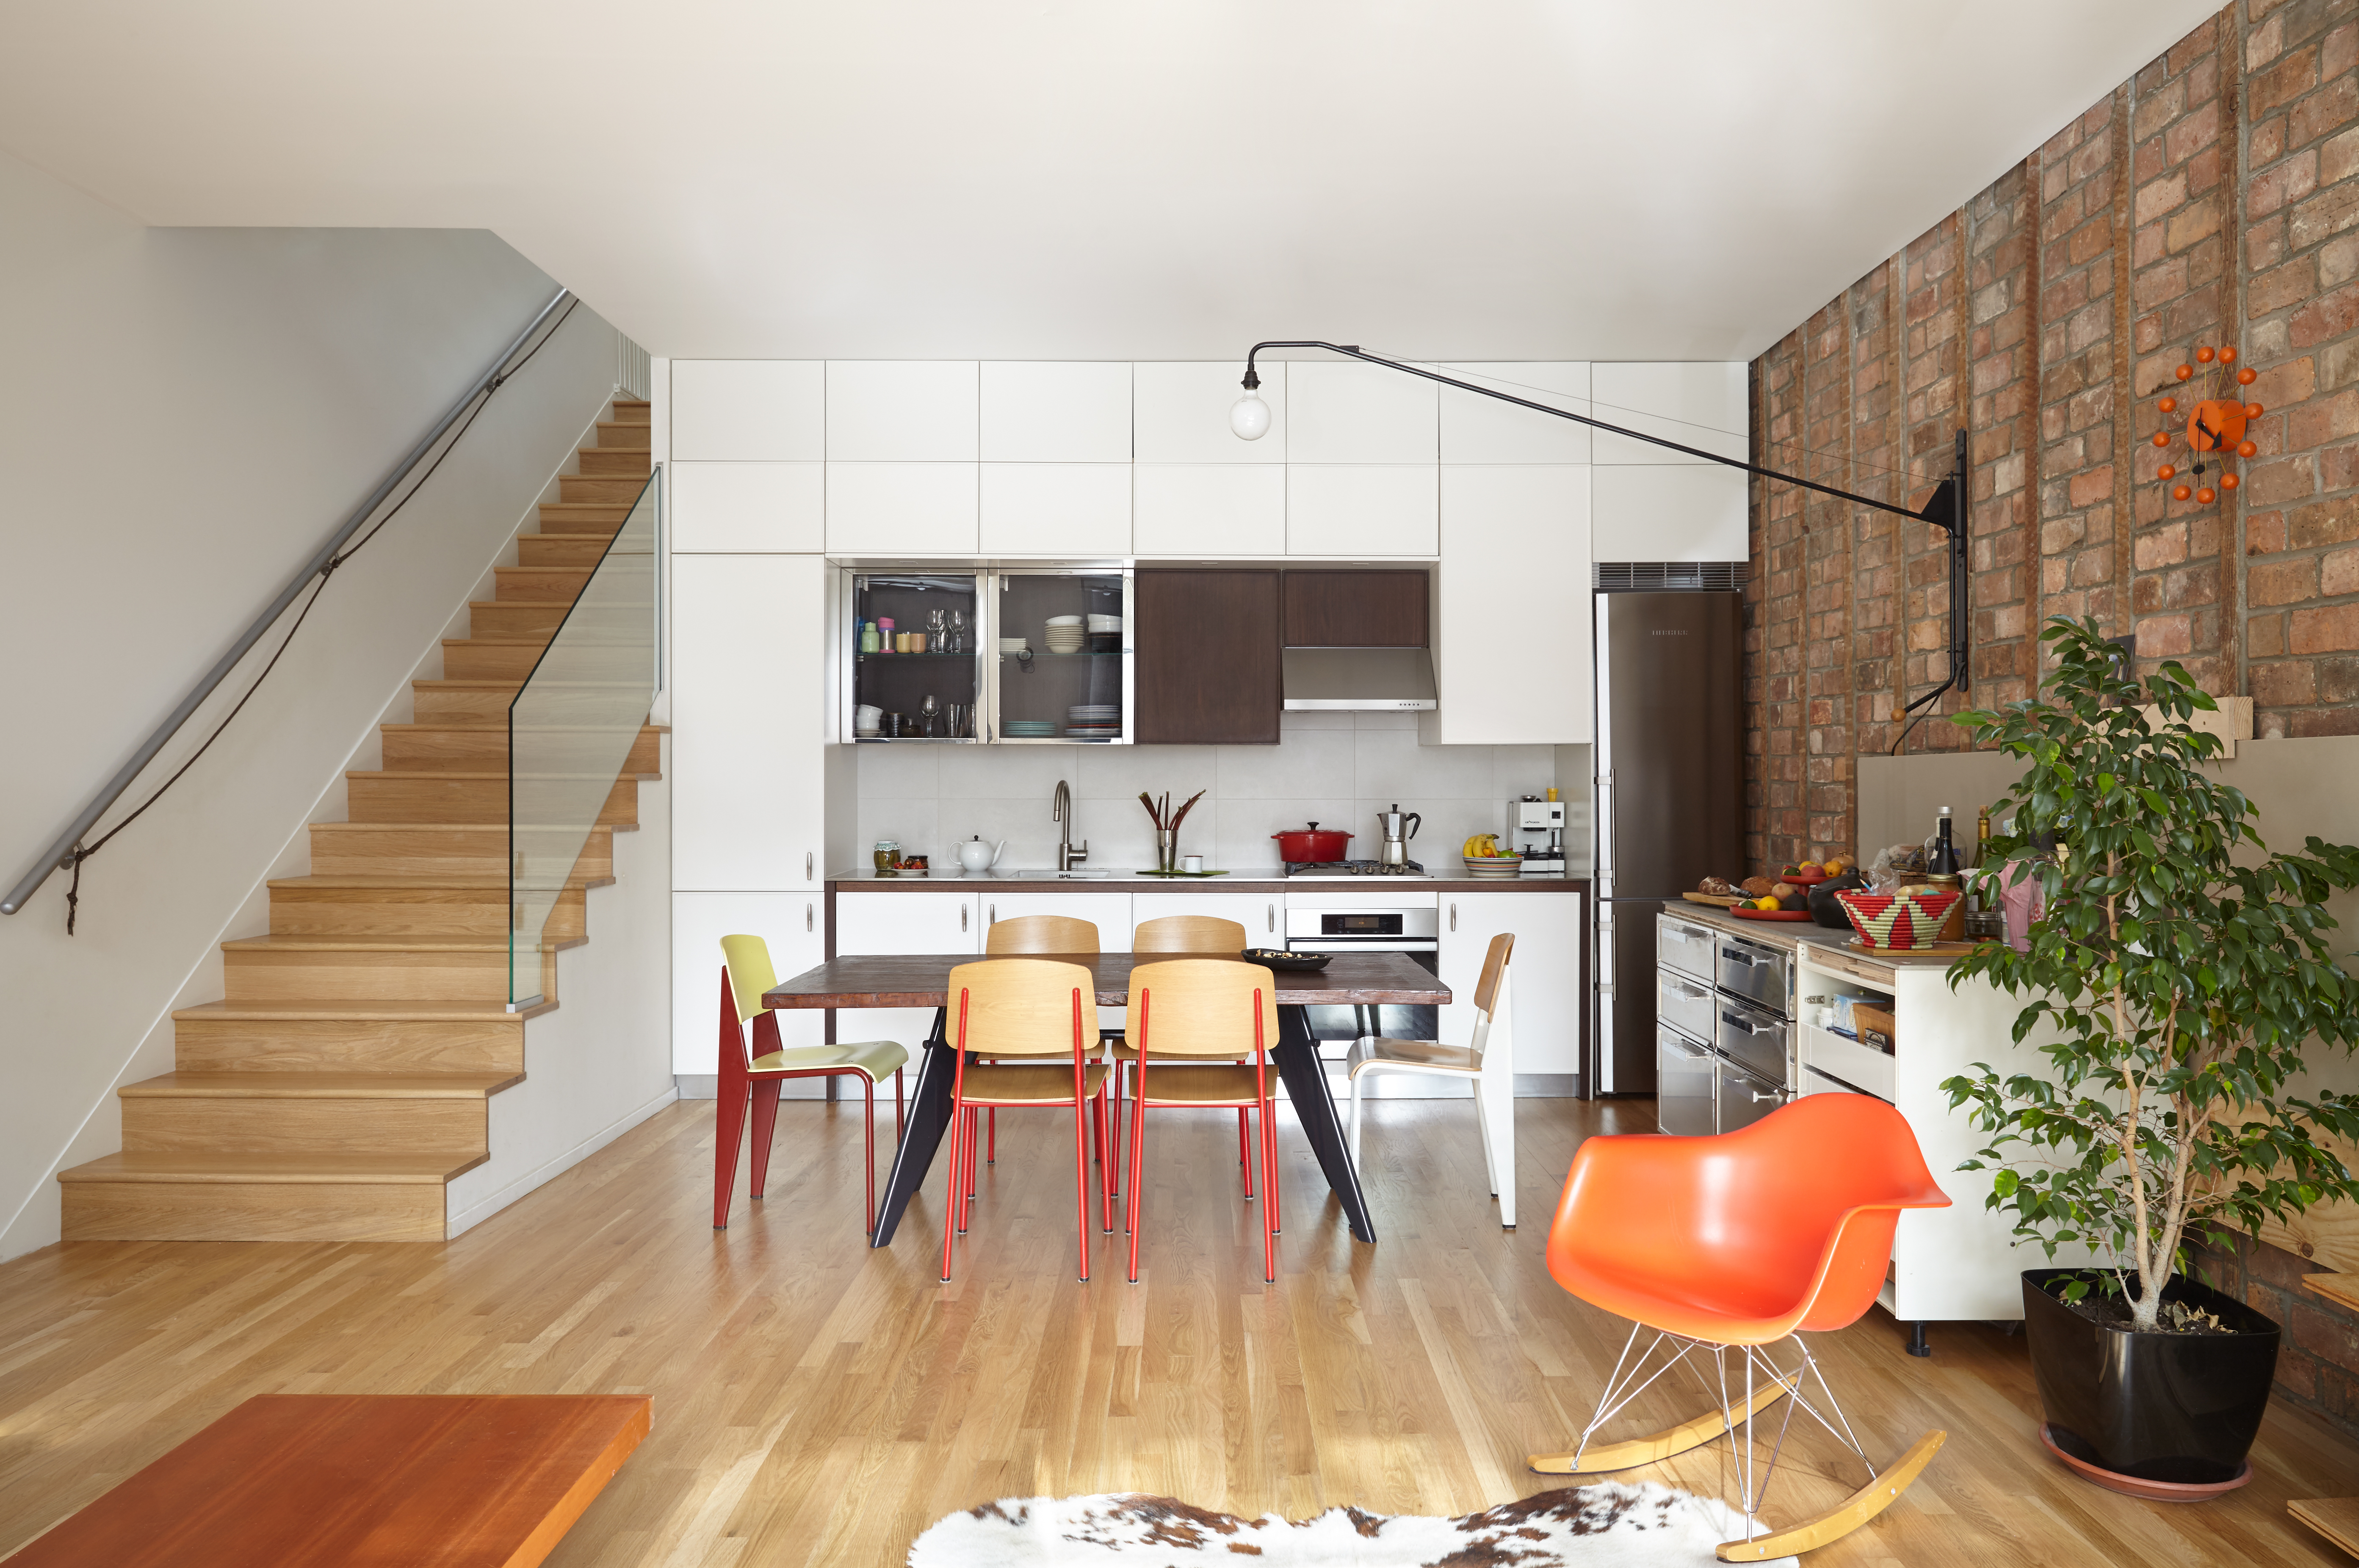 A living area. There is a table flanked by assorted chairs. There is white kitchen cabinetry. On one side of the room is a wooden staircase. On the other side of the room is an exposed red brick wall.